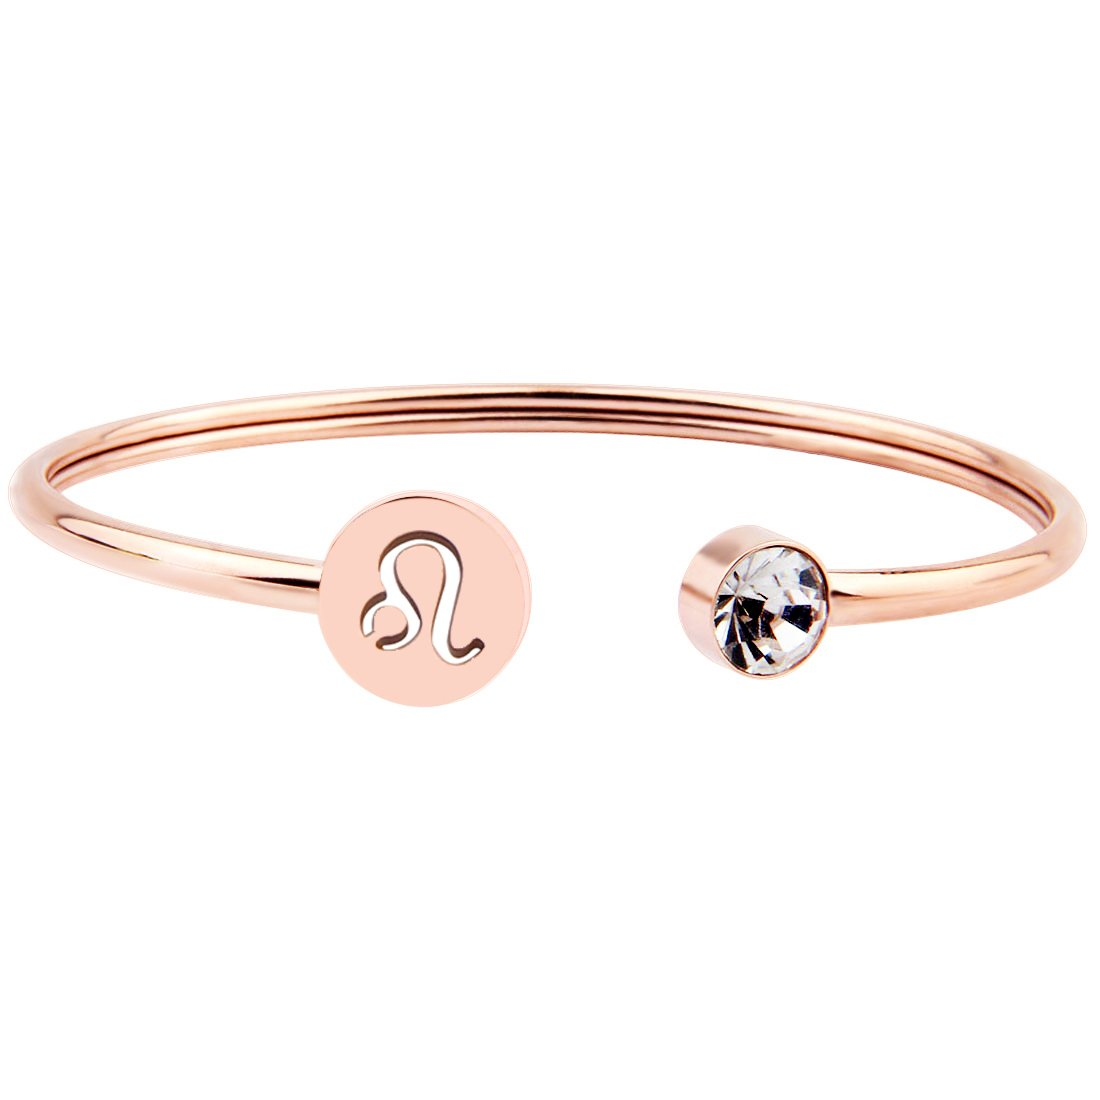 Zuo Bao Simple Rose Gold Zodiac Sign Cuff Bracelet with Birthstone Birthday Gift for Women Girls (Leo) by Zuo Bao (Image #1)